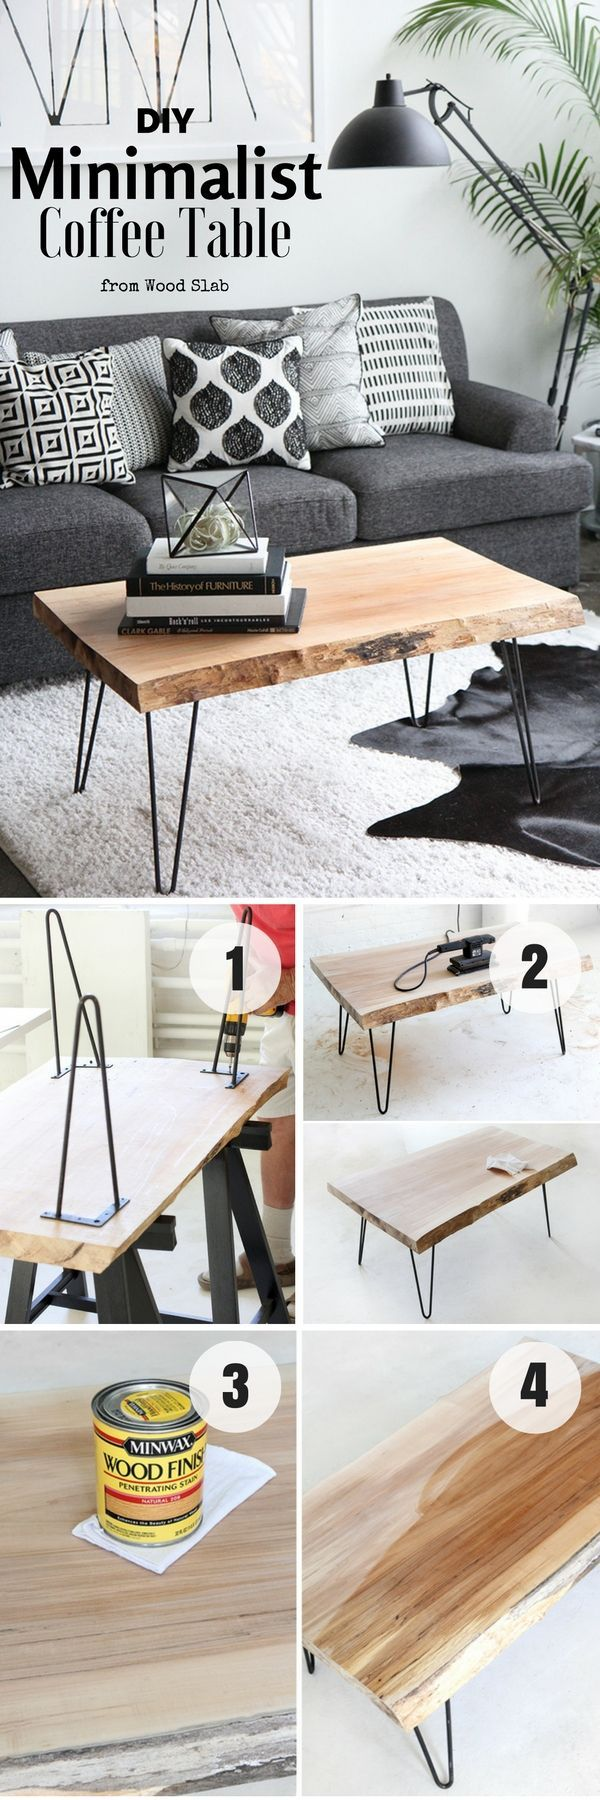 best make table images on pinterest woodworking furniture and